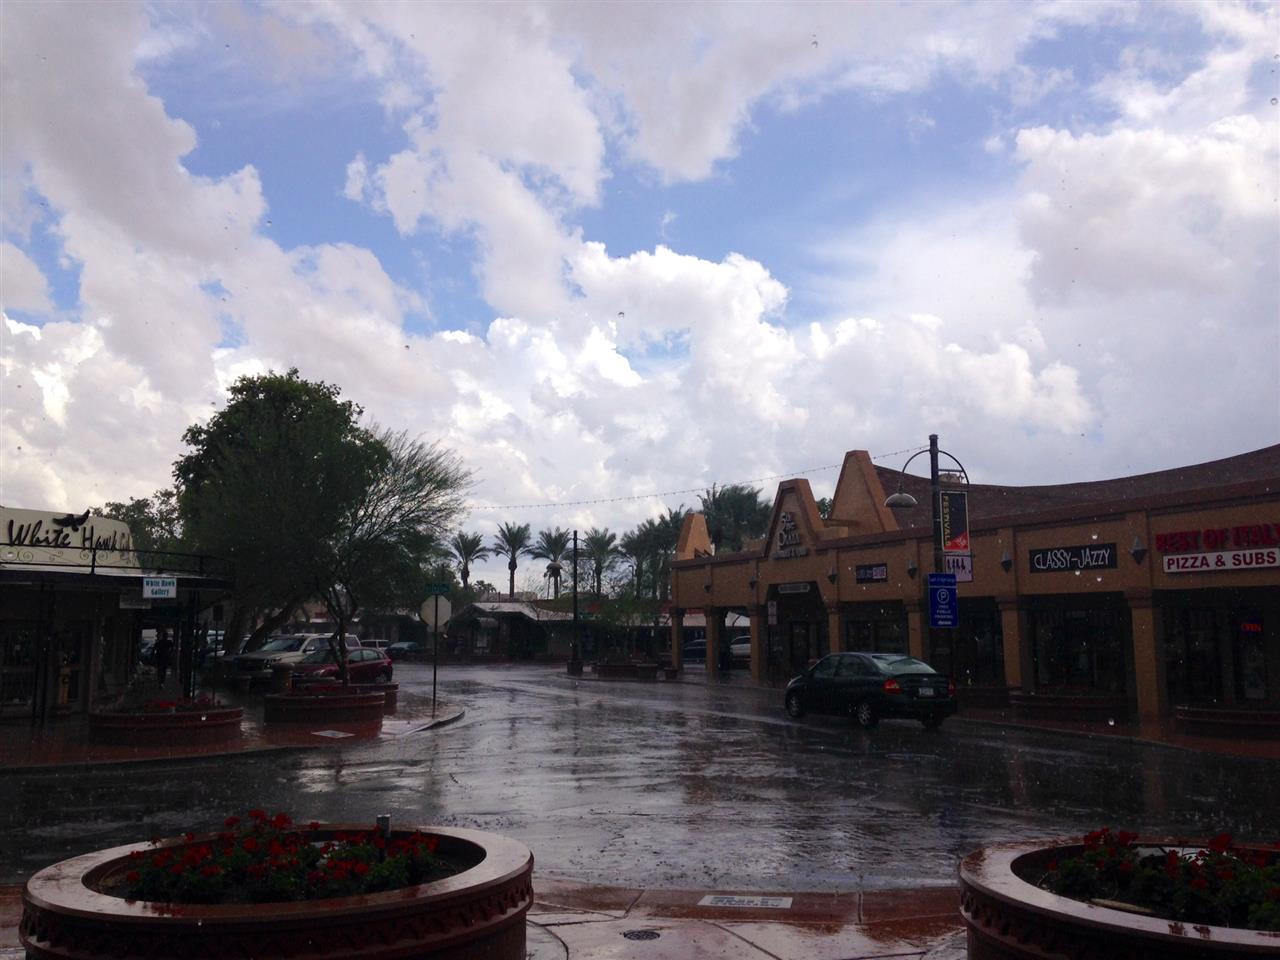 Blue skies, even when it rains #Scottsdale#Arizona